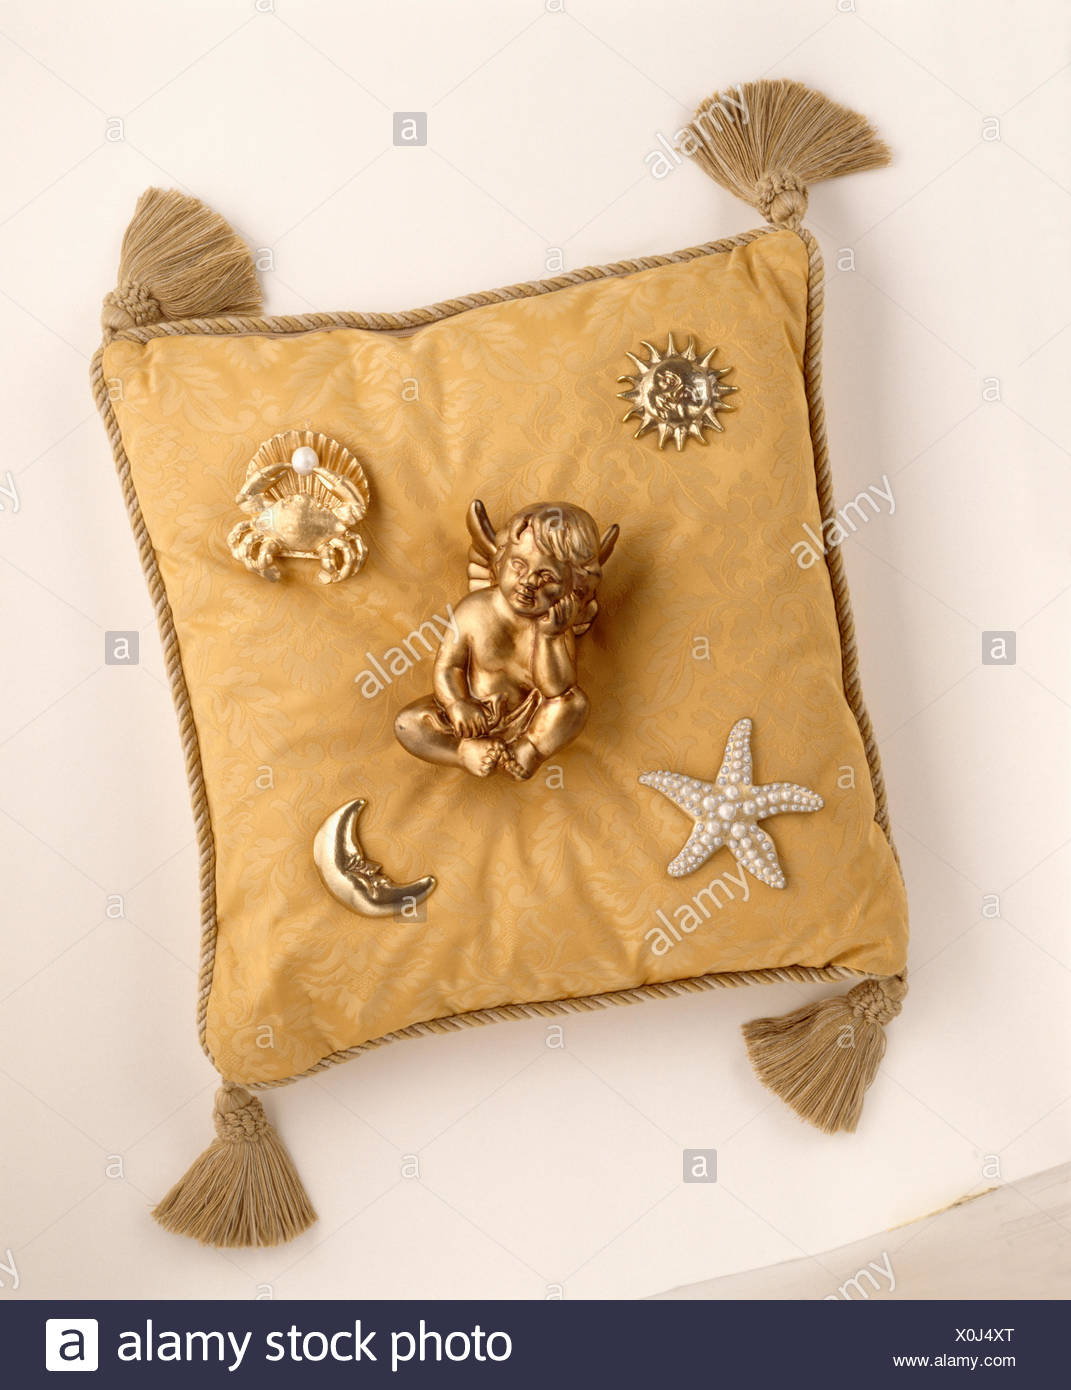 Gold cherub on gold tasseled cushion with attached astronomy motifs - Stock Image